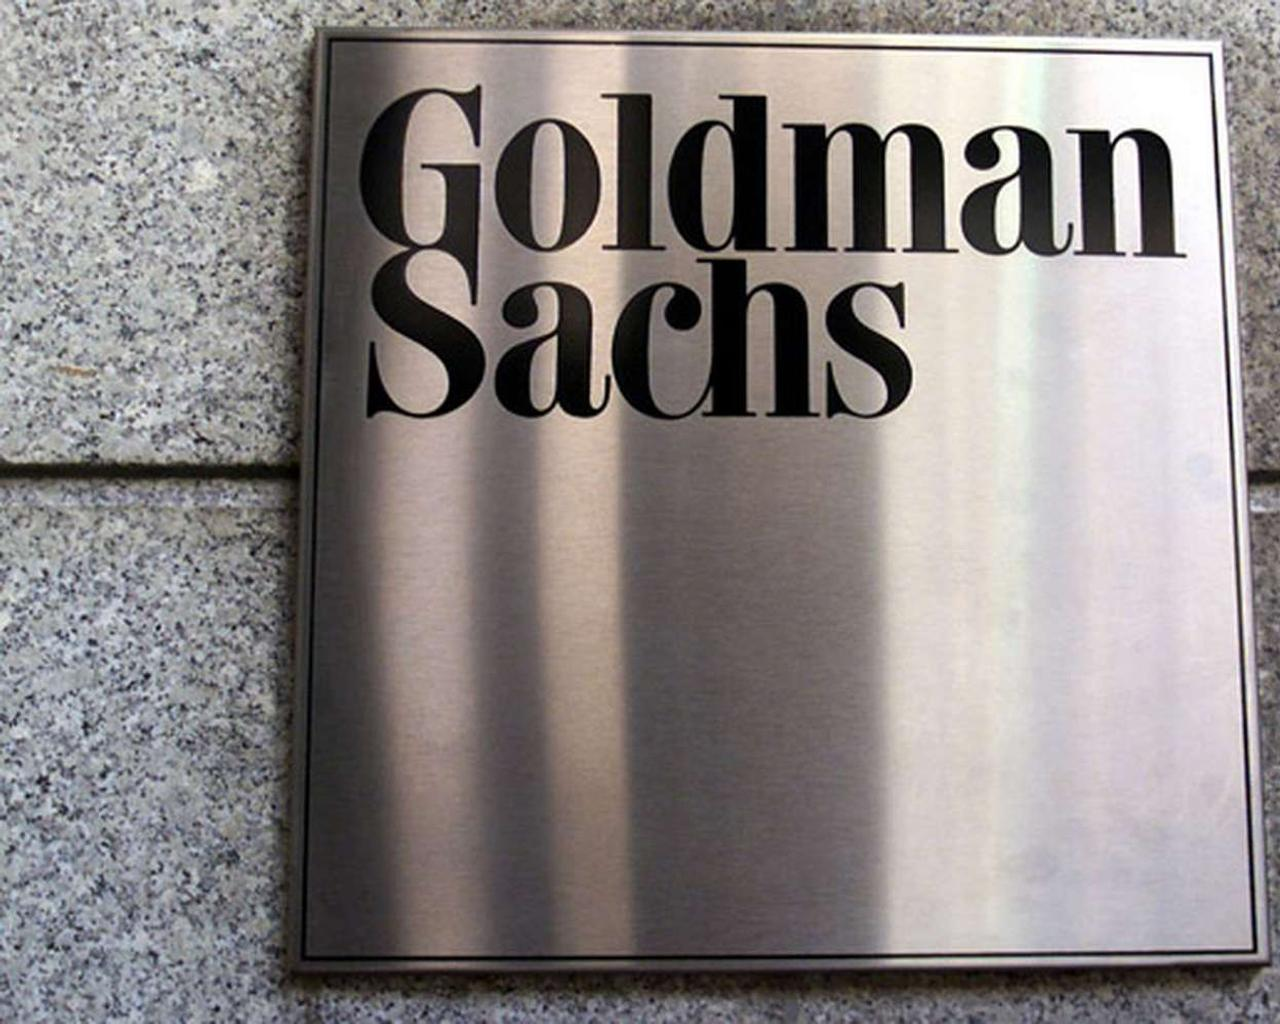 Goldman Sachs reports record results that top the Street amid booming investment banking